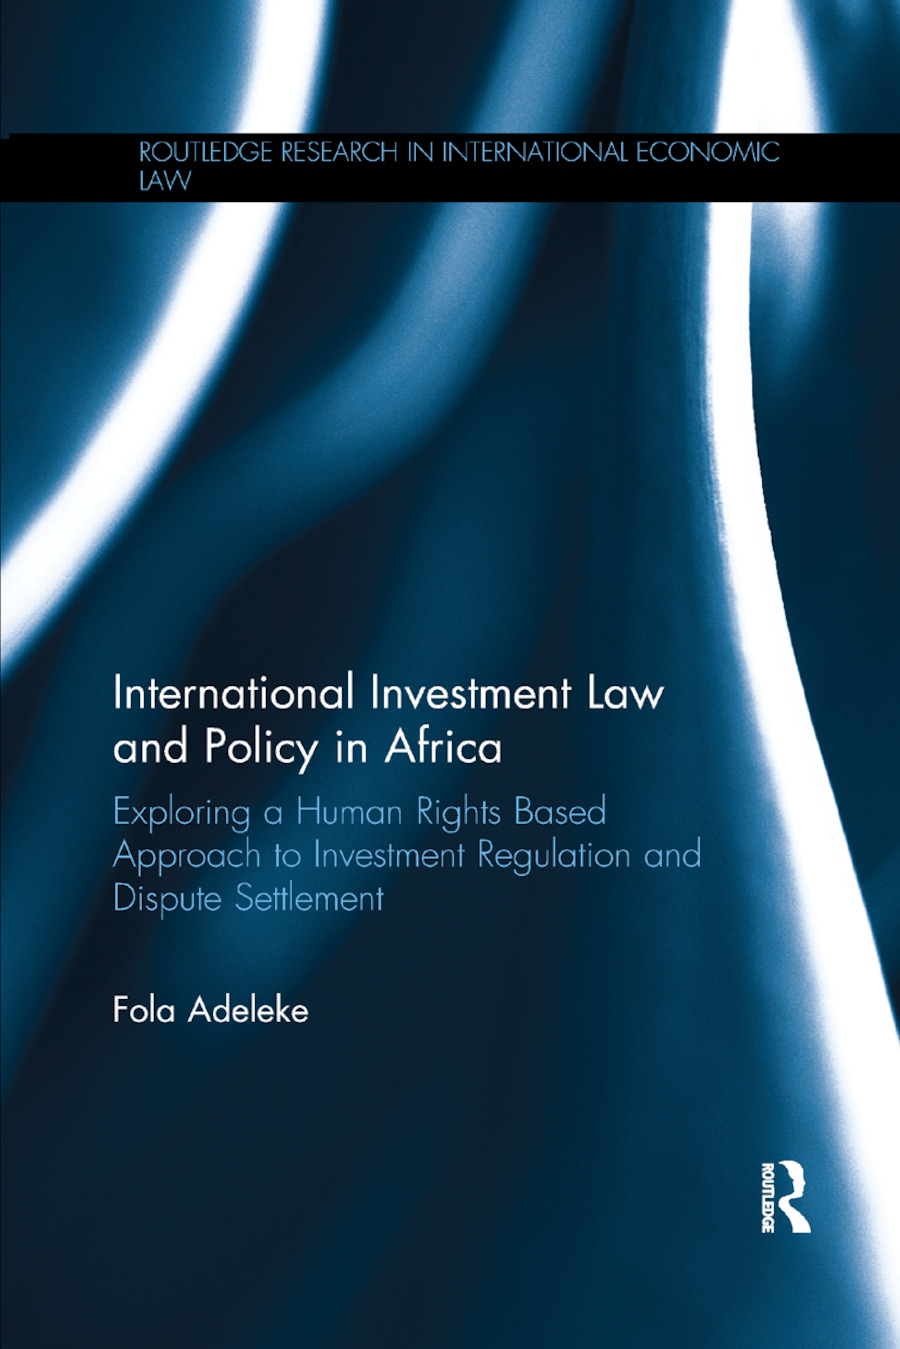 International Investment Law and Policy in Africa